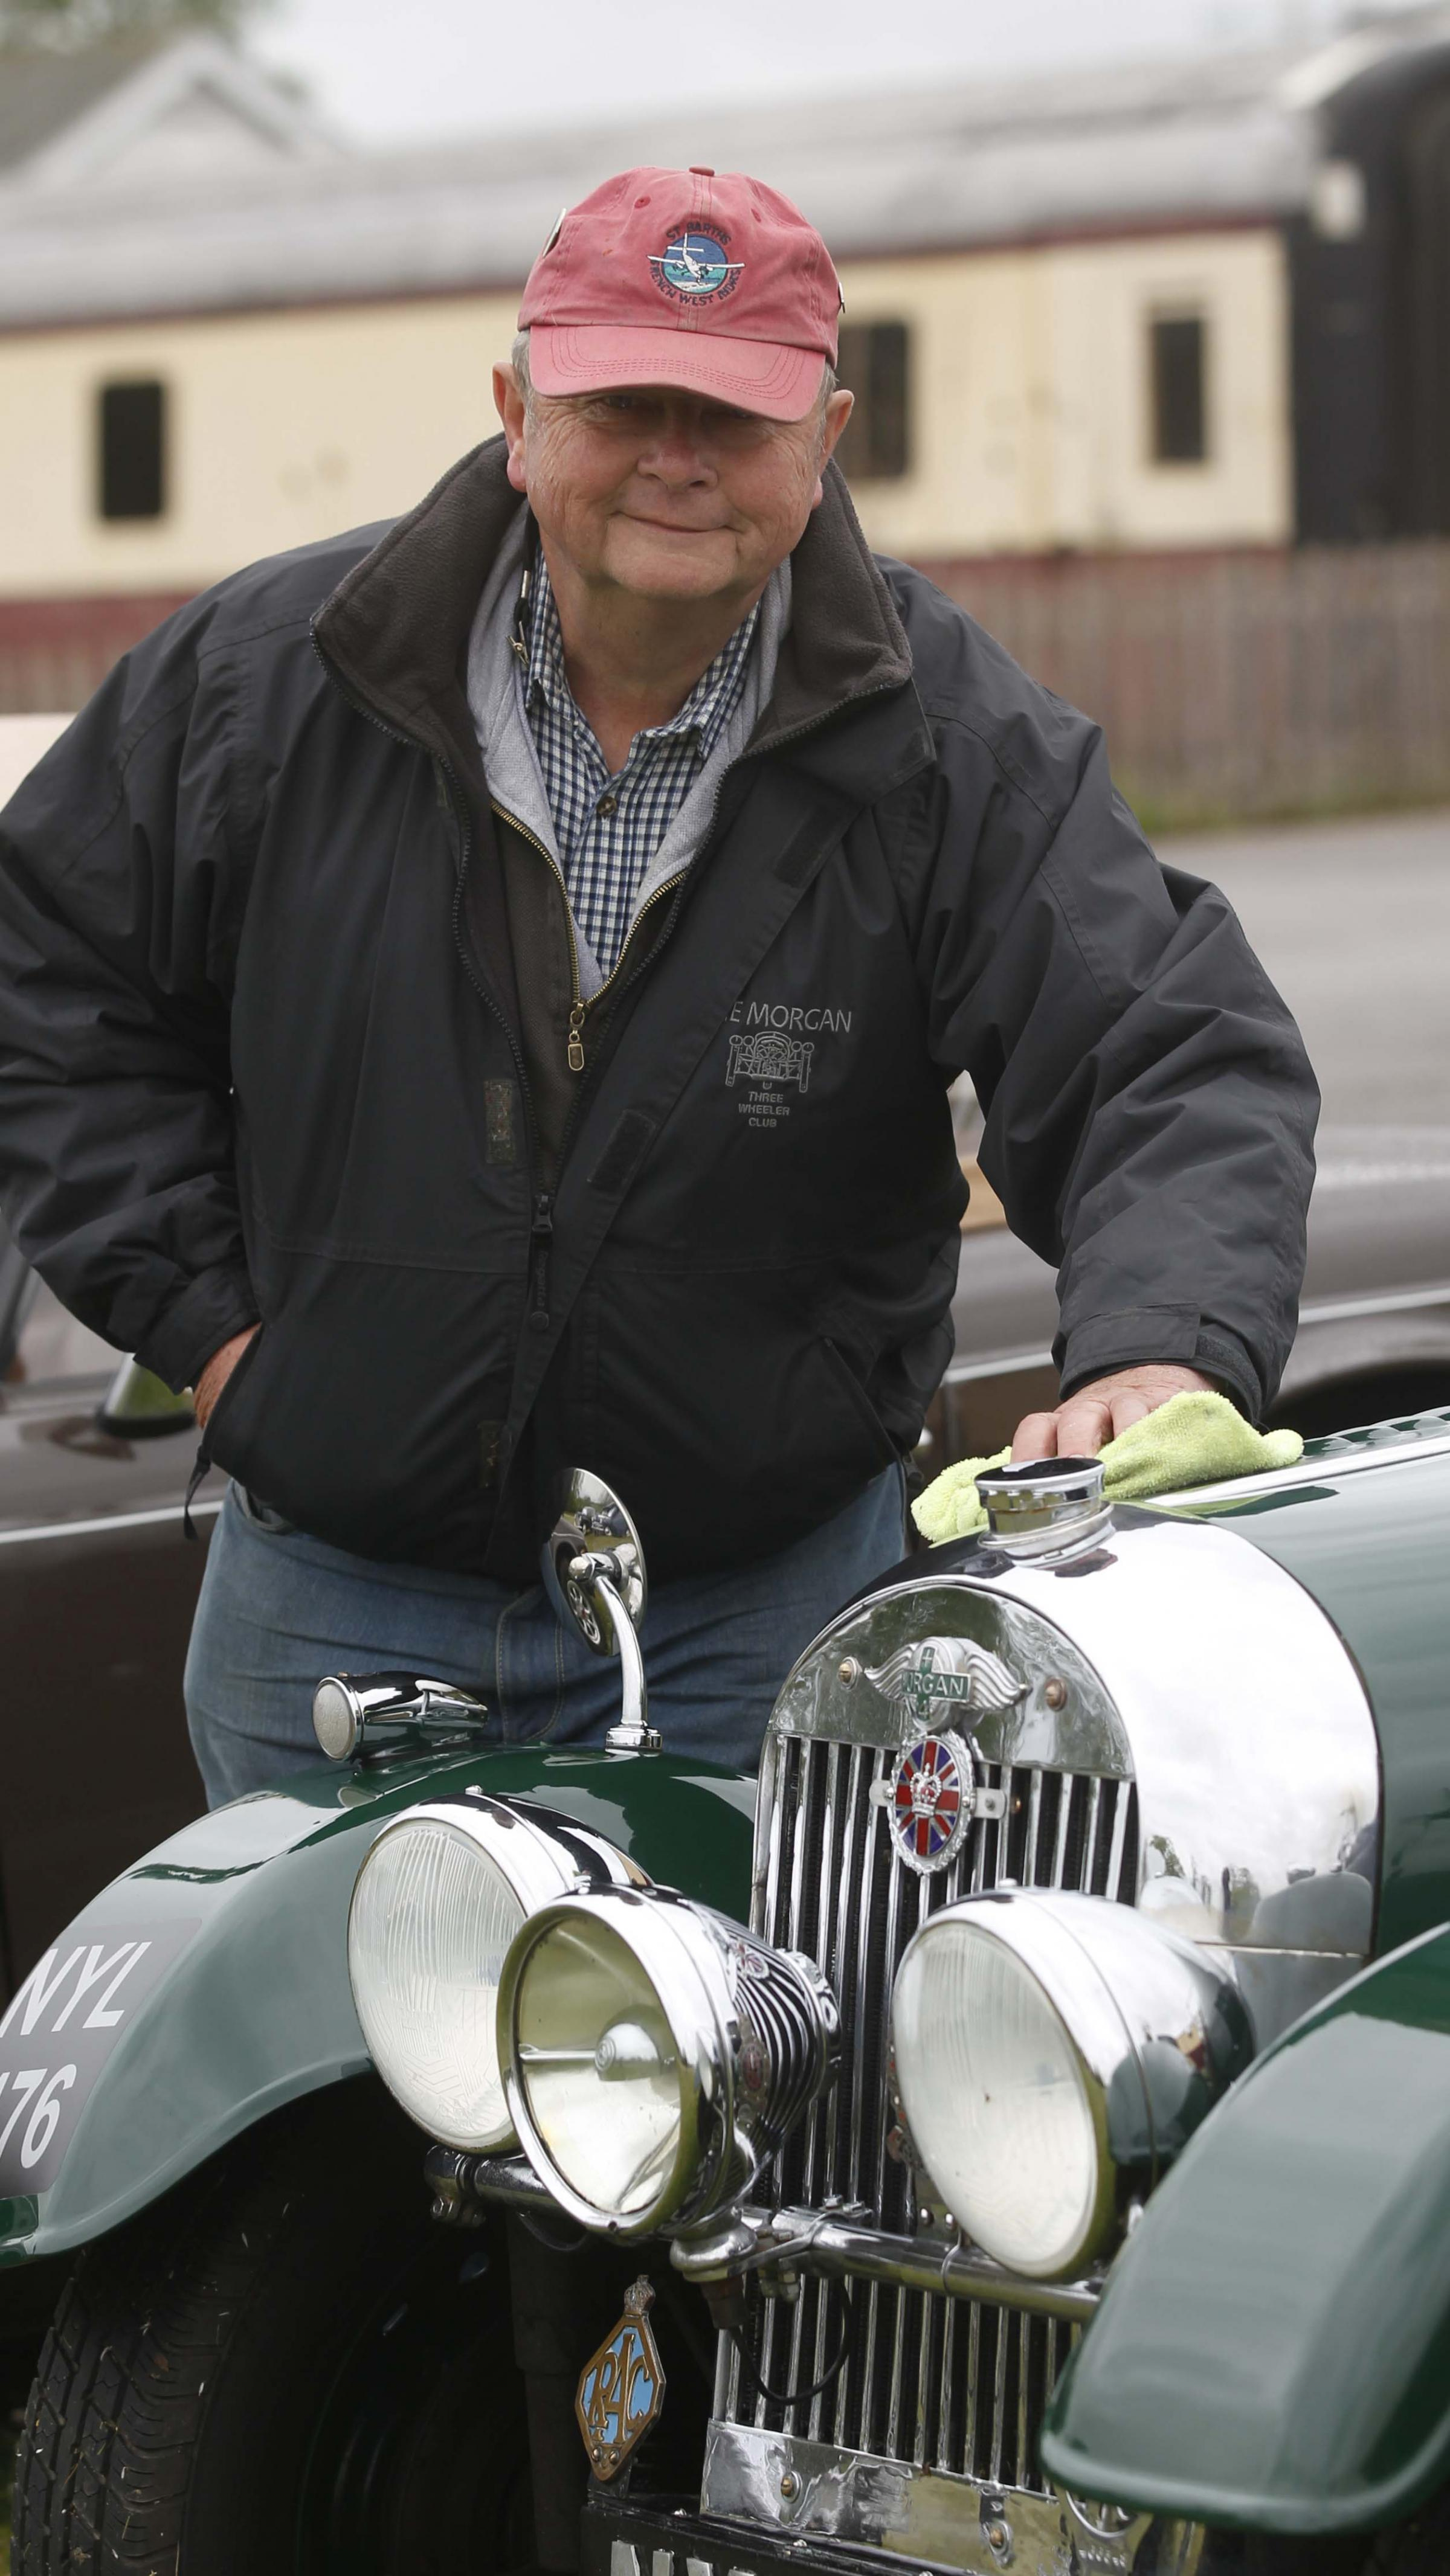 Martin Brown exhibits his pride and joy - a Morgan car.